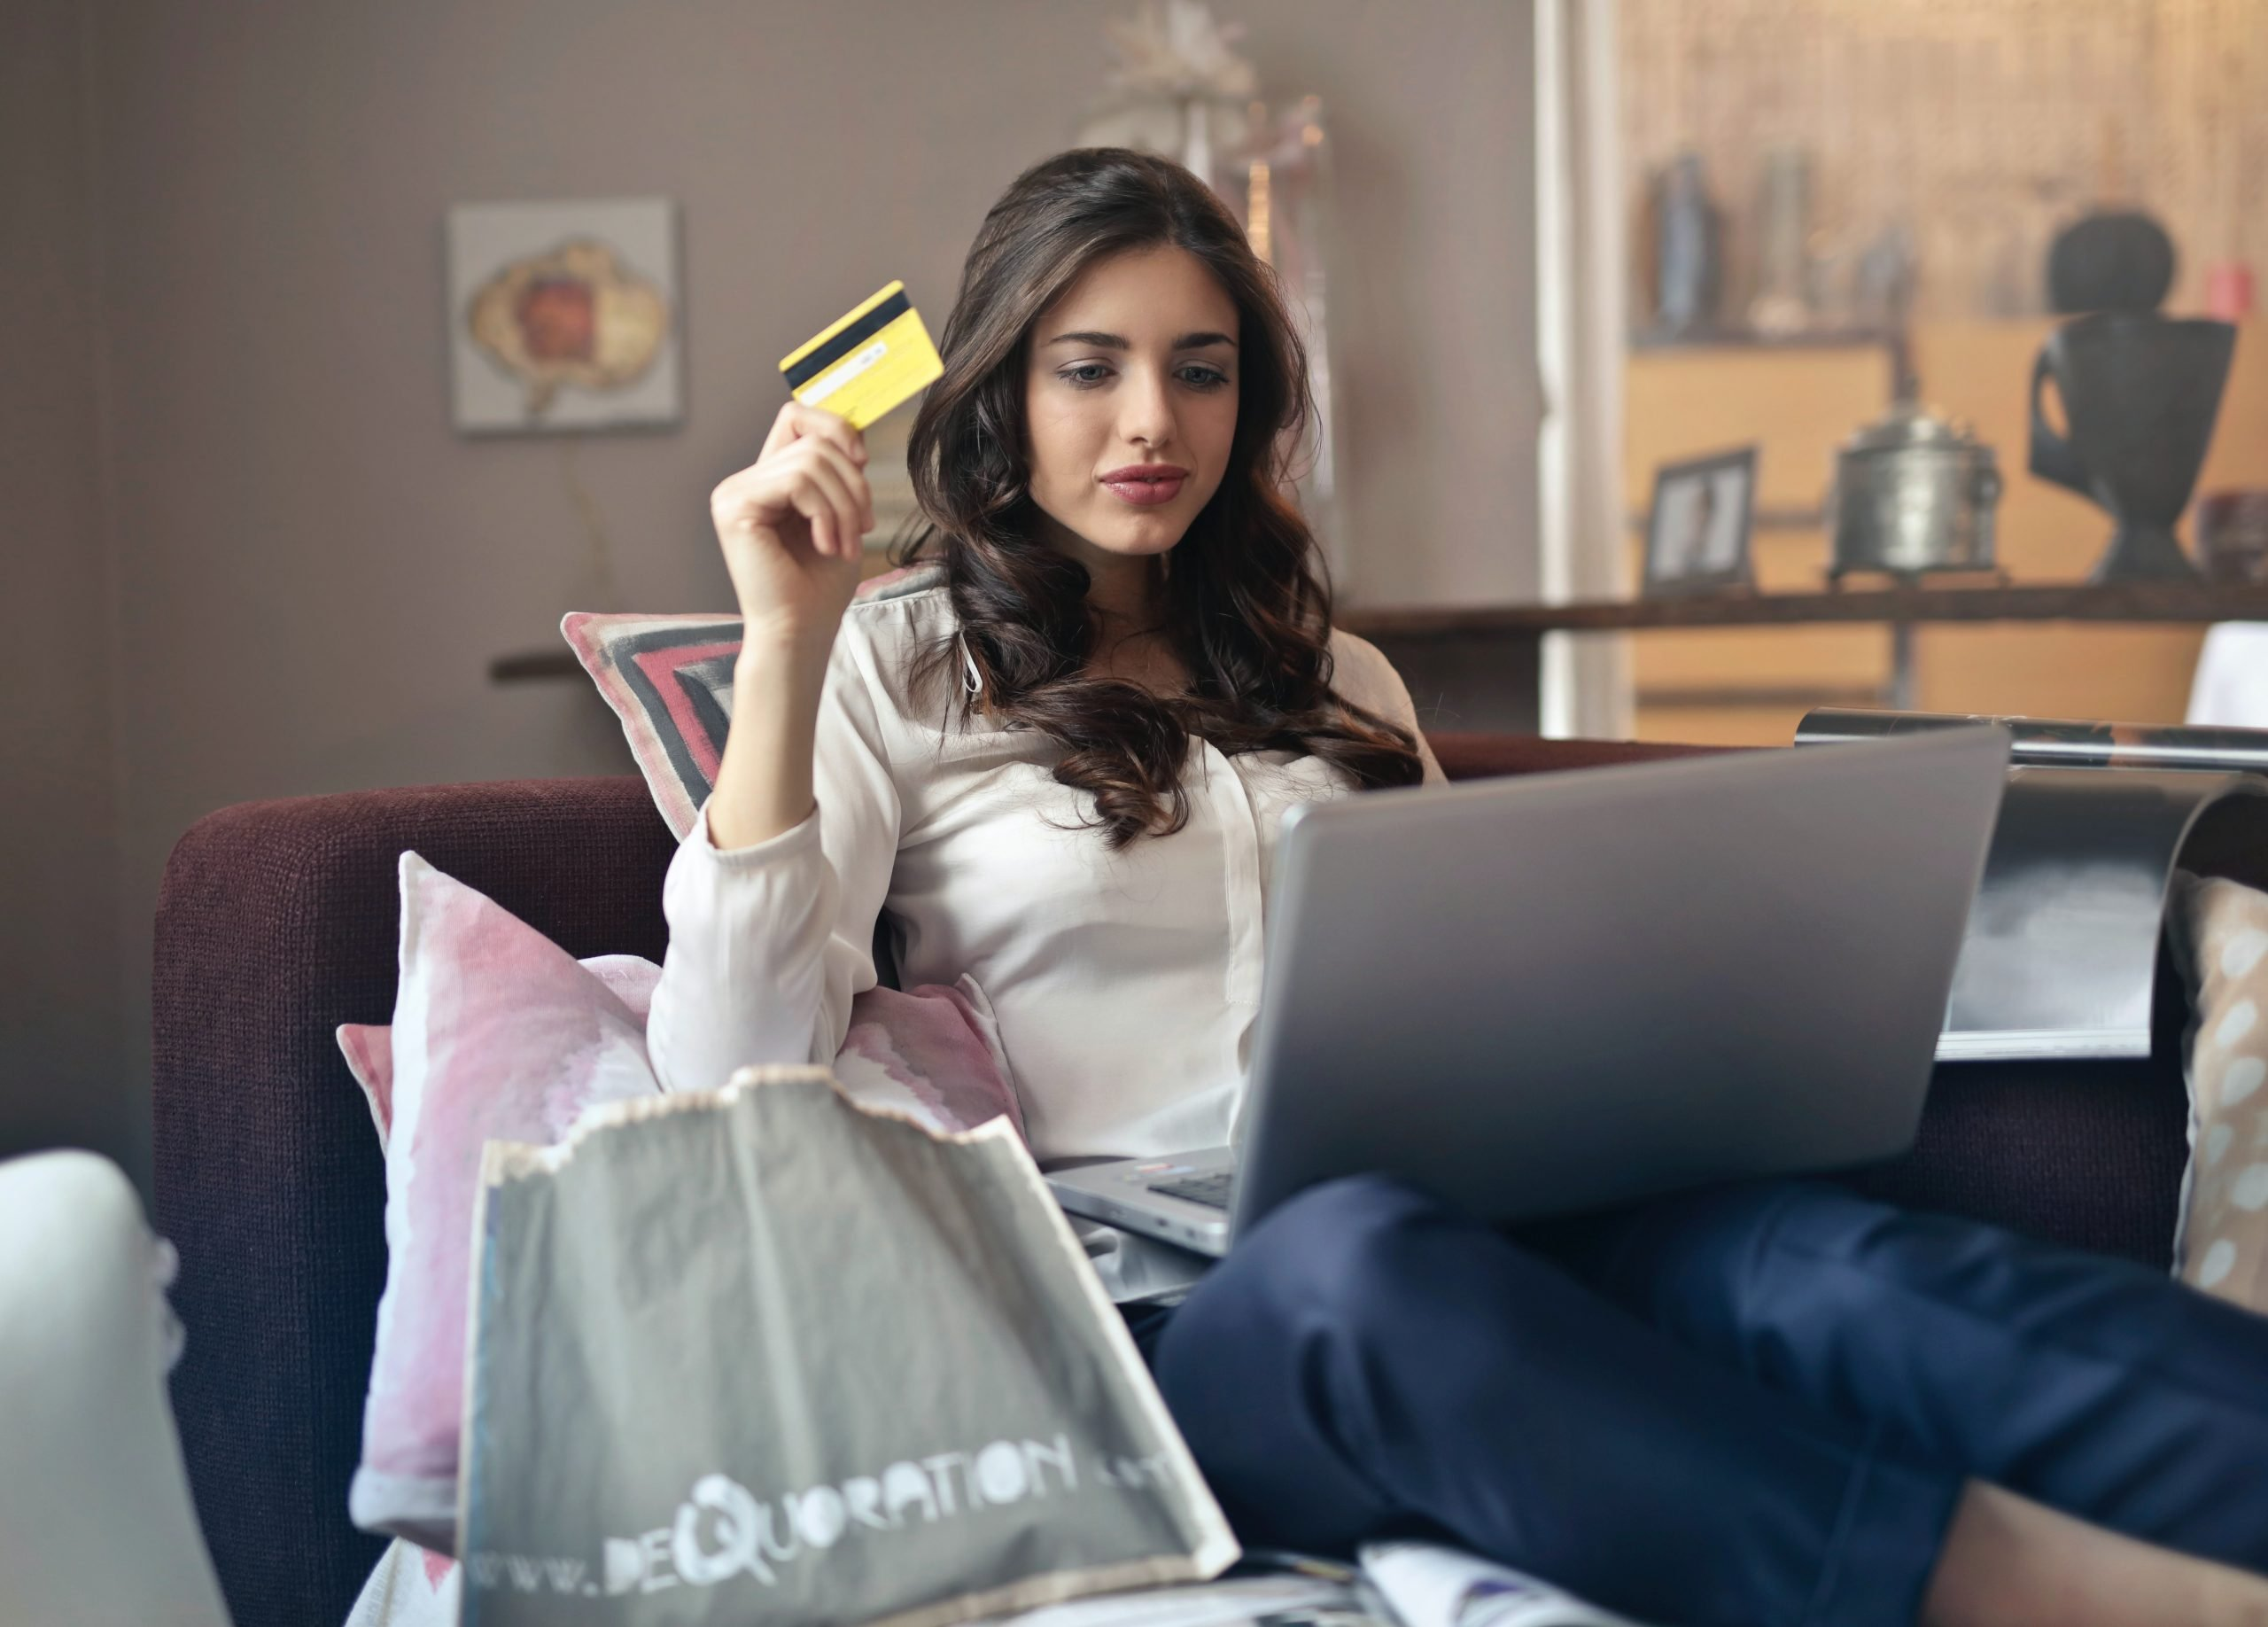 Does My Credit Score Really Affect My Insurance Premiums?